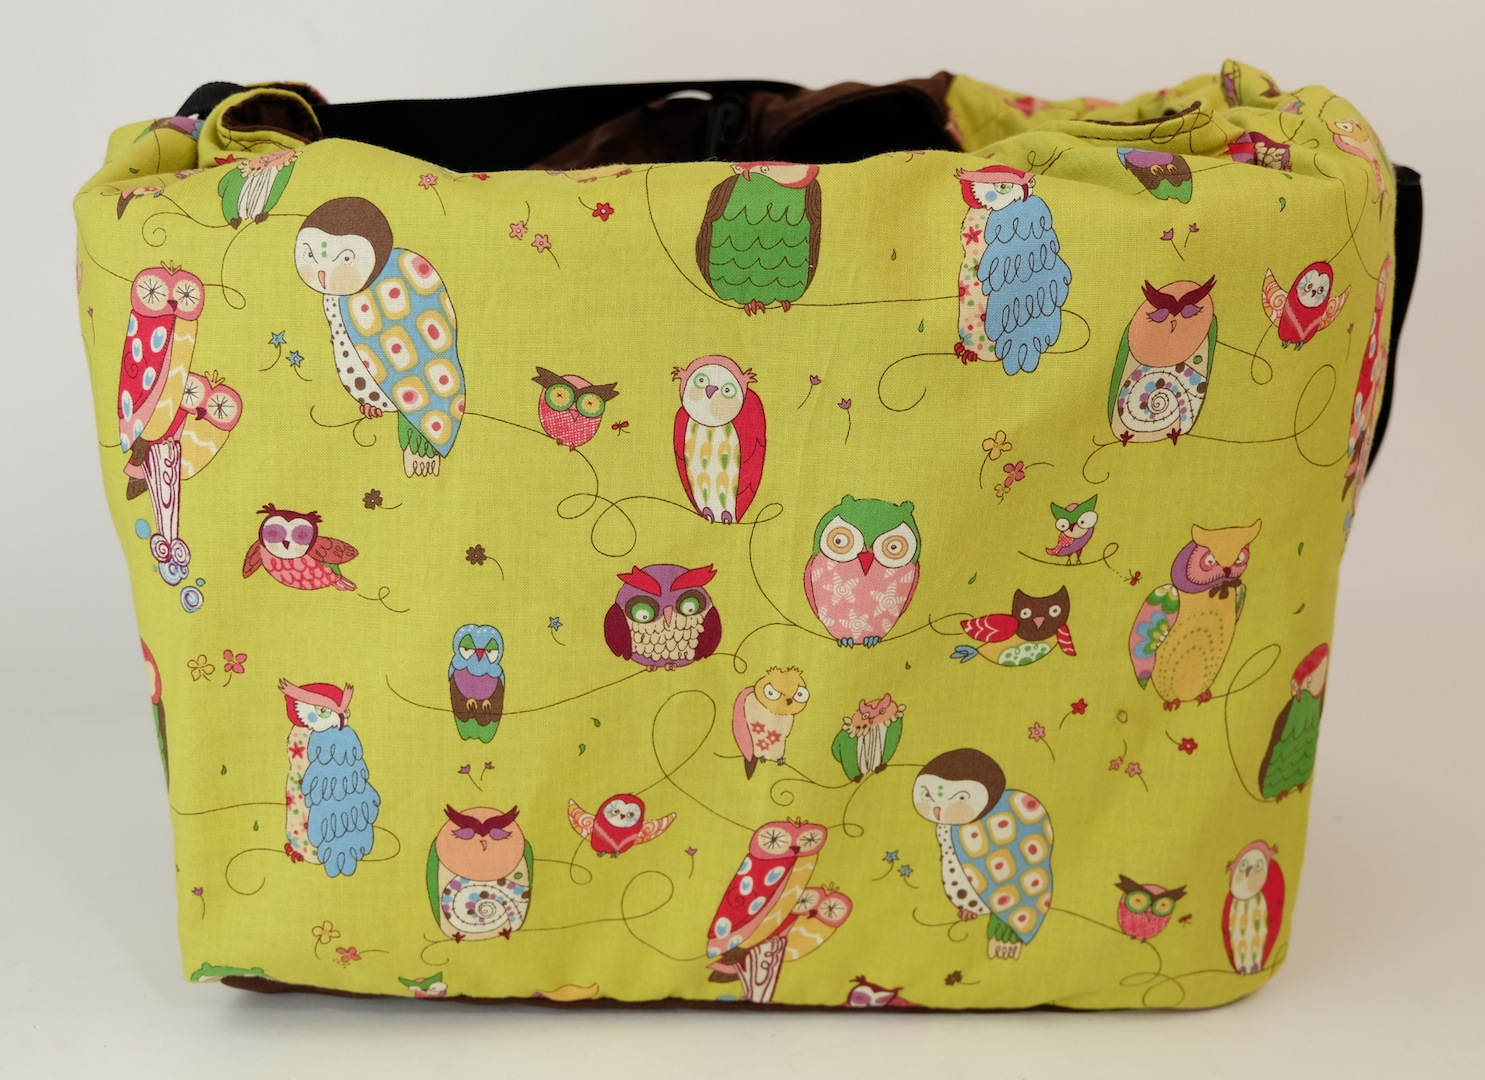 It's A Hoot - Bicycle Basket Liner and Tote Bag